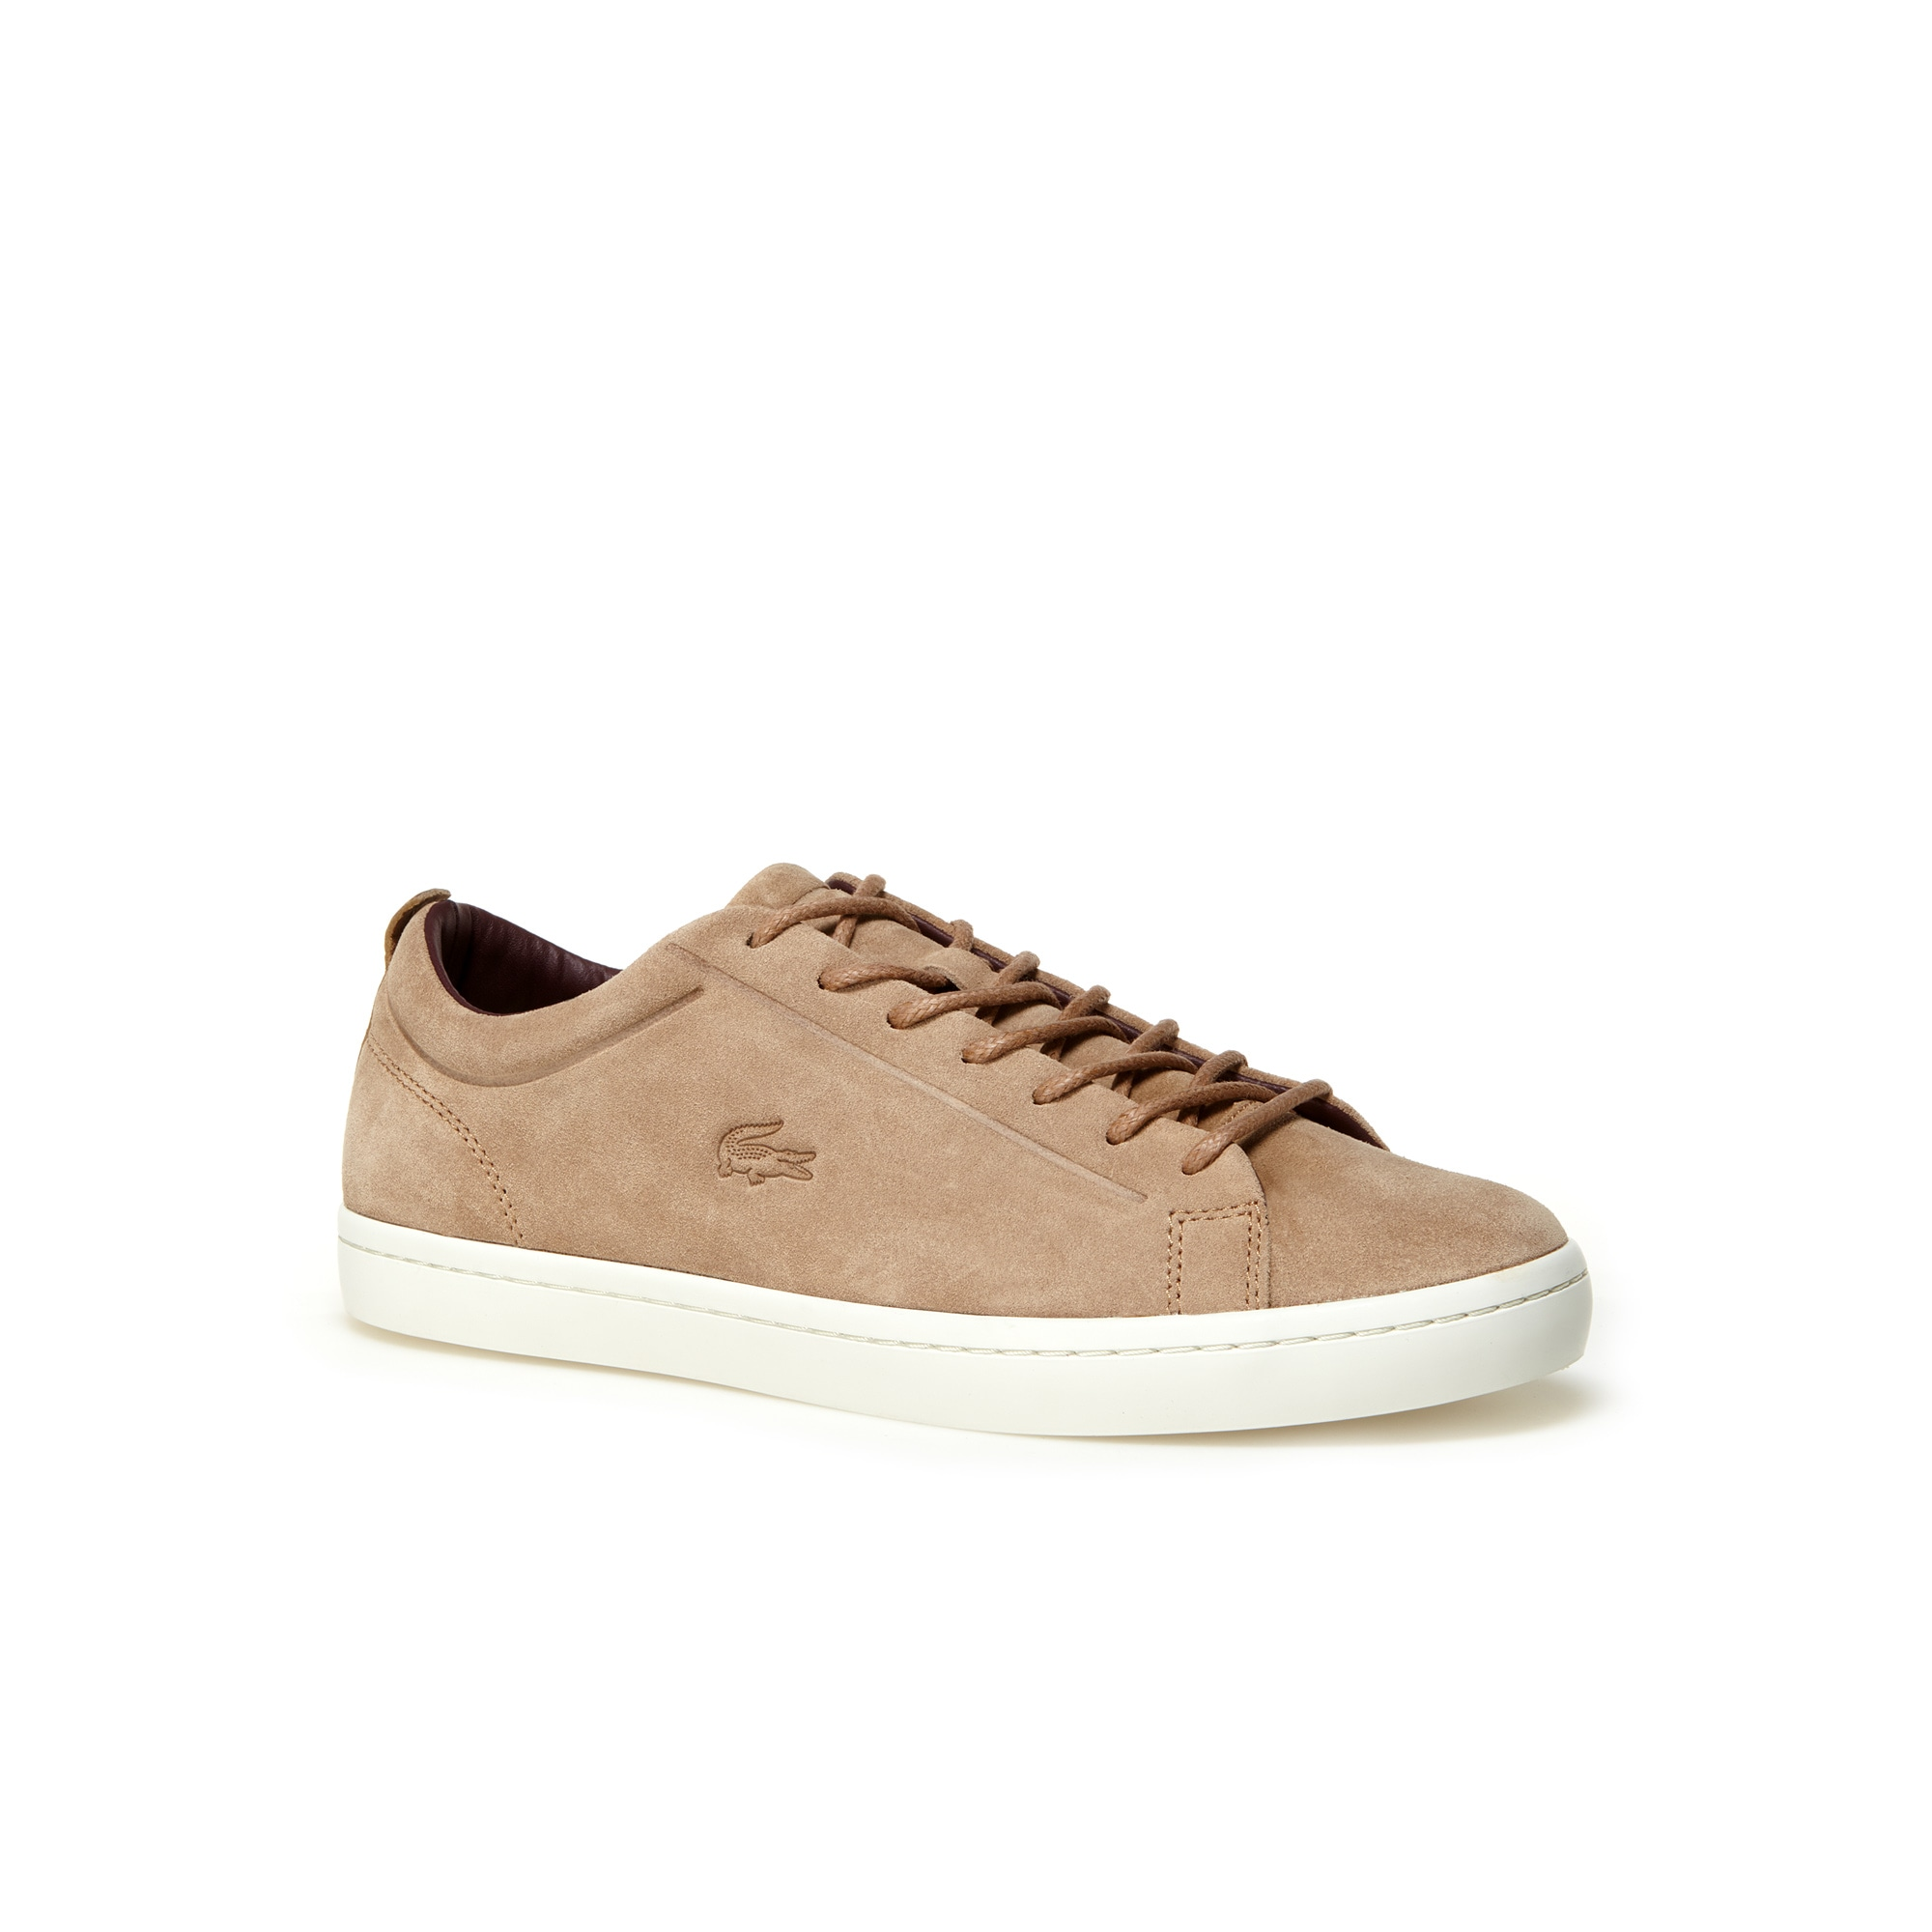 Men's Straightset Suede Sneakers